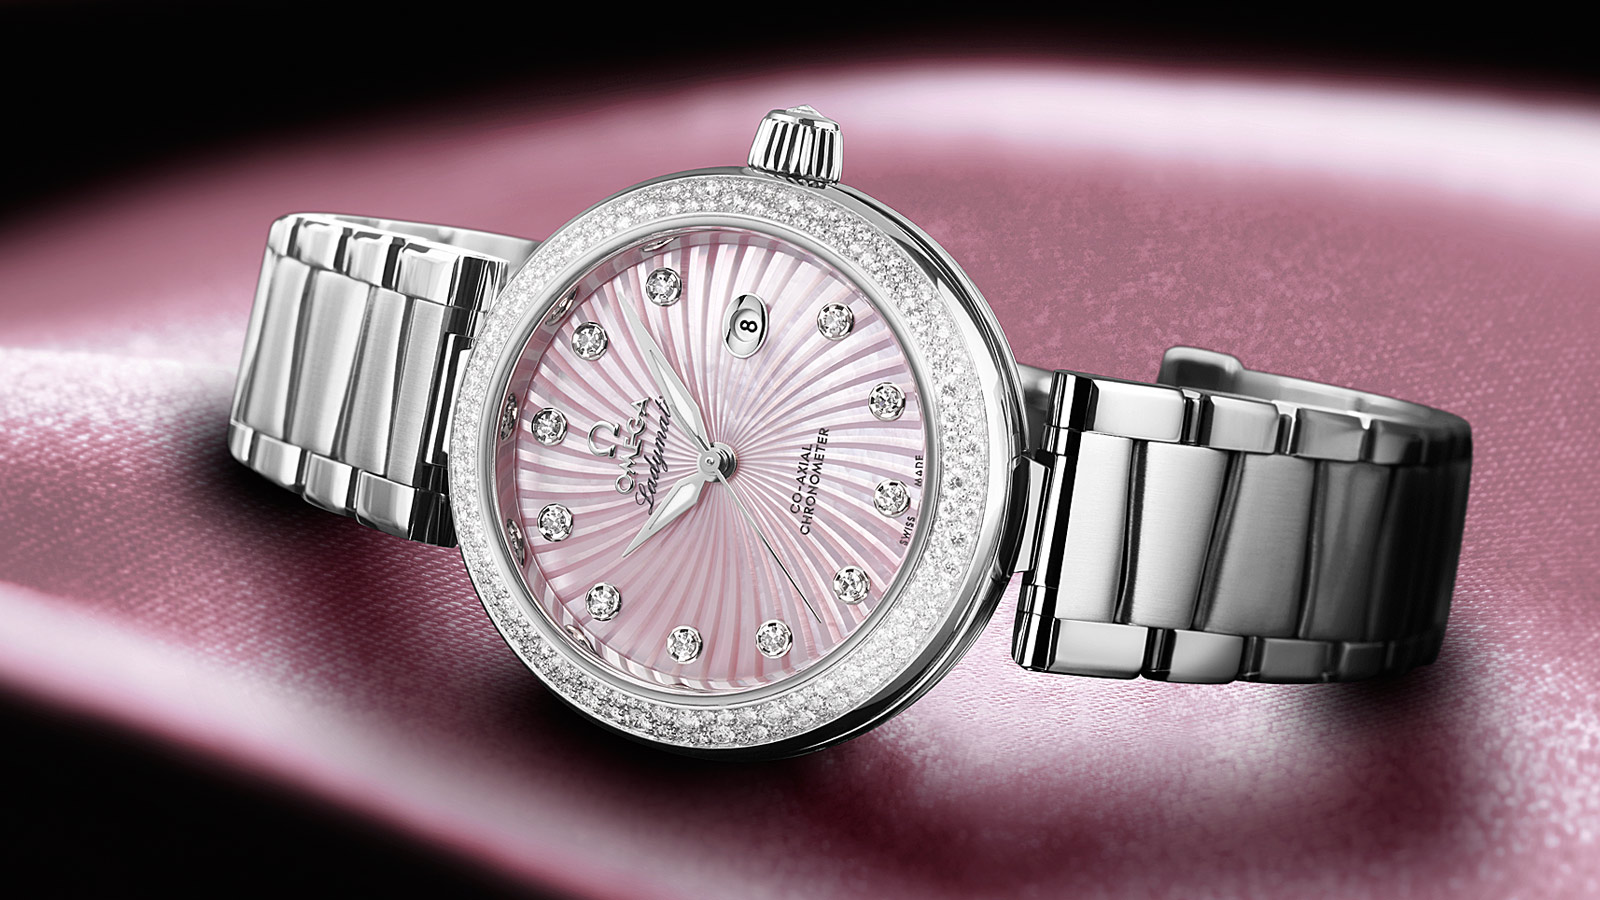 De Ville Ladymatic Ladymatic Omega Co‑Axial 34 mm - 425.35.34.20.57.001 - Vista 1